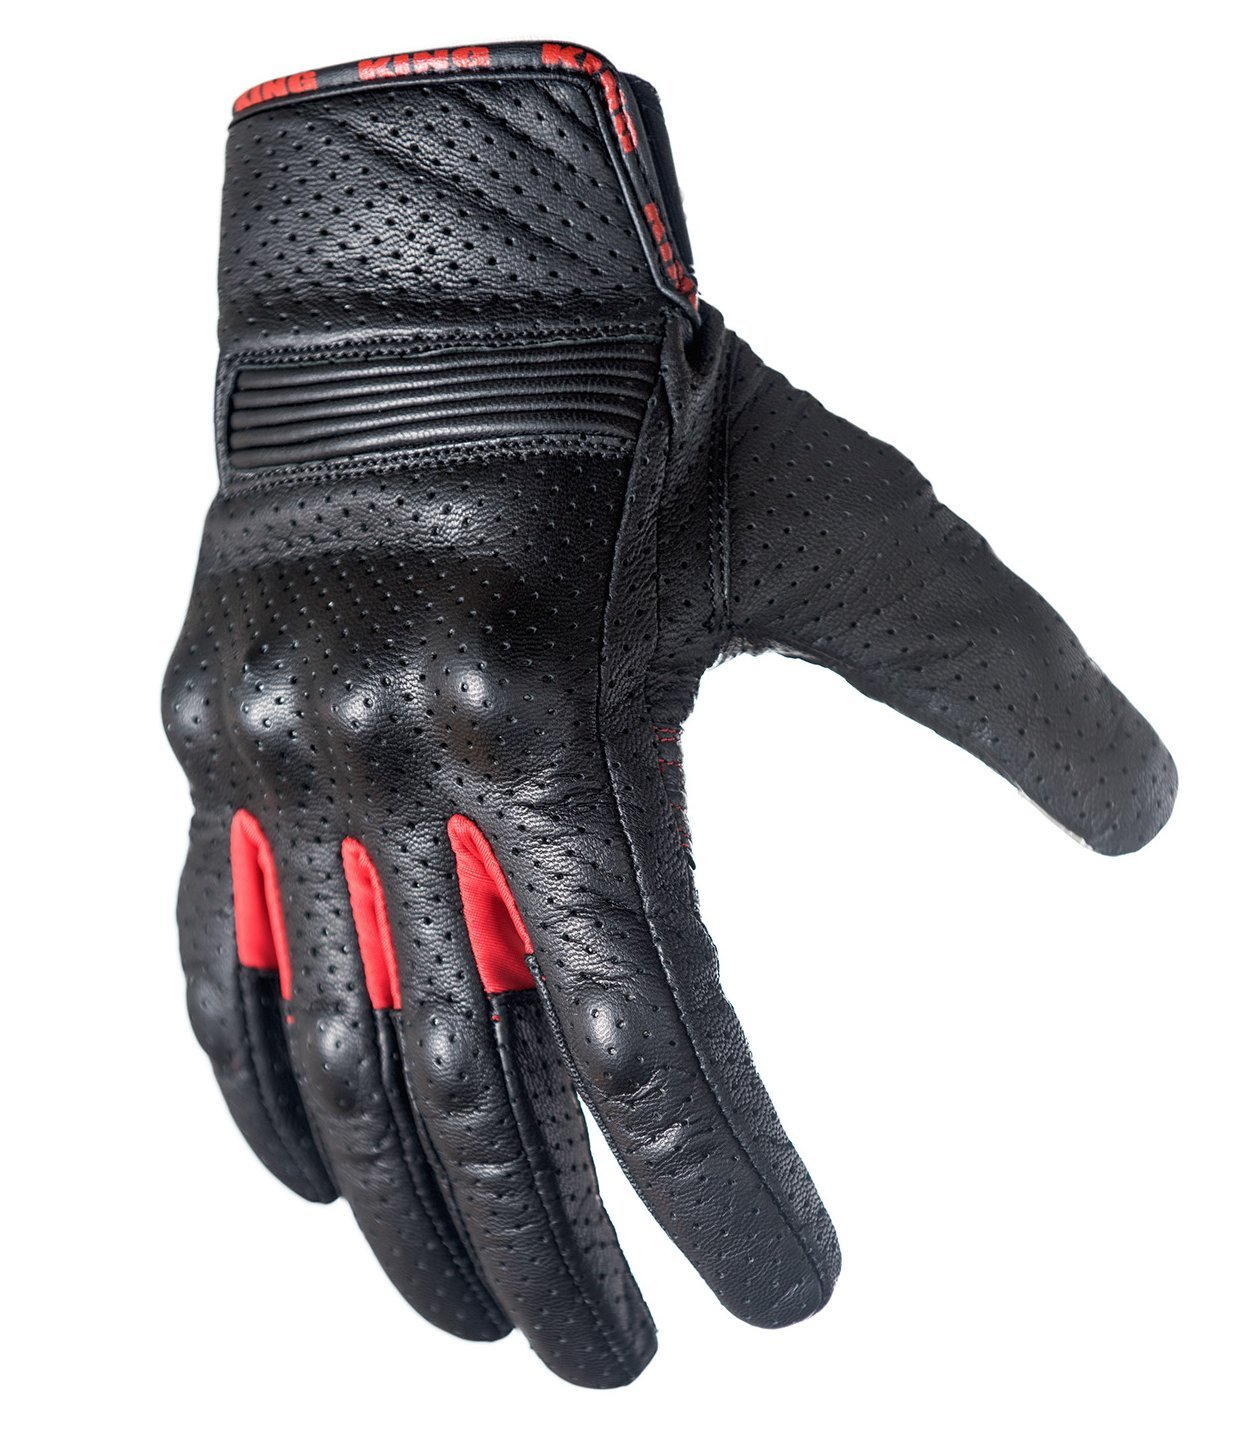 Motorcycle Biker Gloves Black Premium Leather | Padded All Weather Feature for Men and Women | Breathable Moisture Wick Air Flow Technology Between Fingers | SWIFT (Red-M)